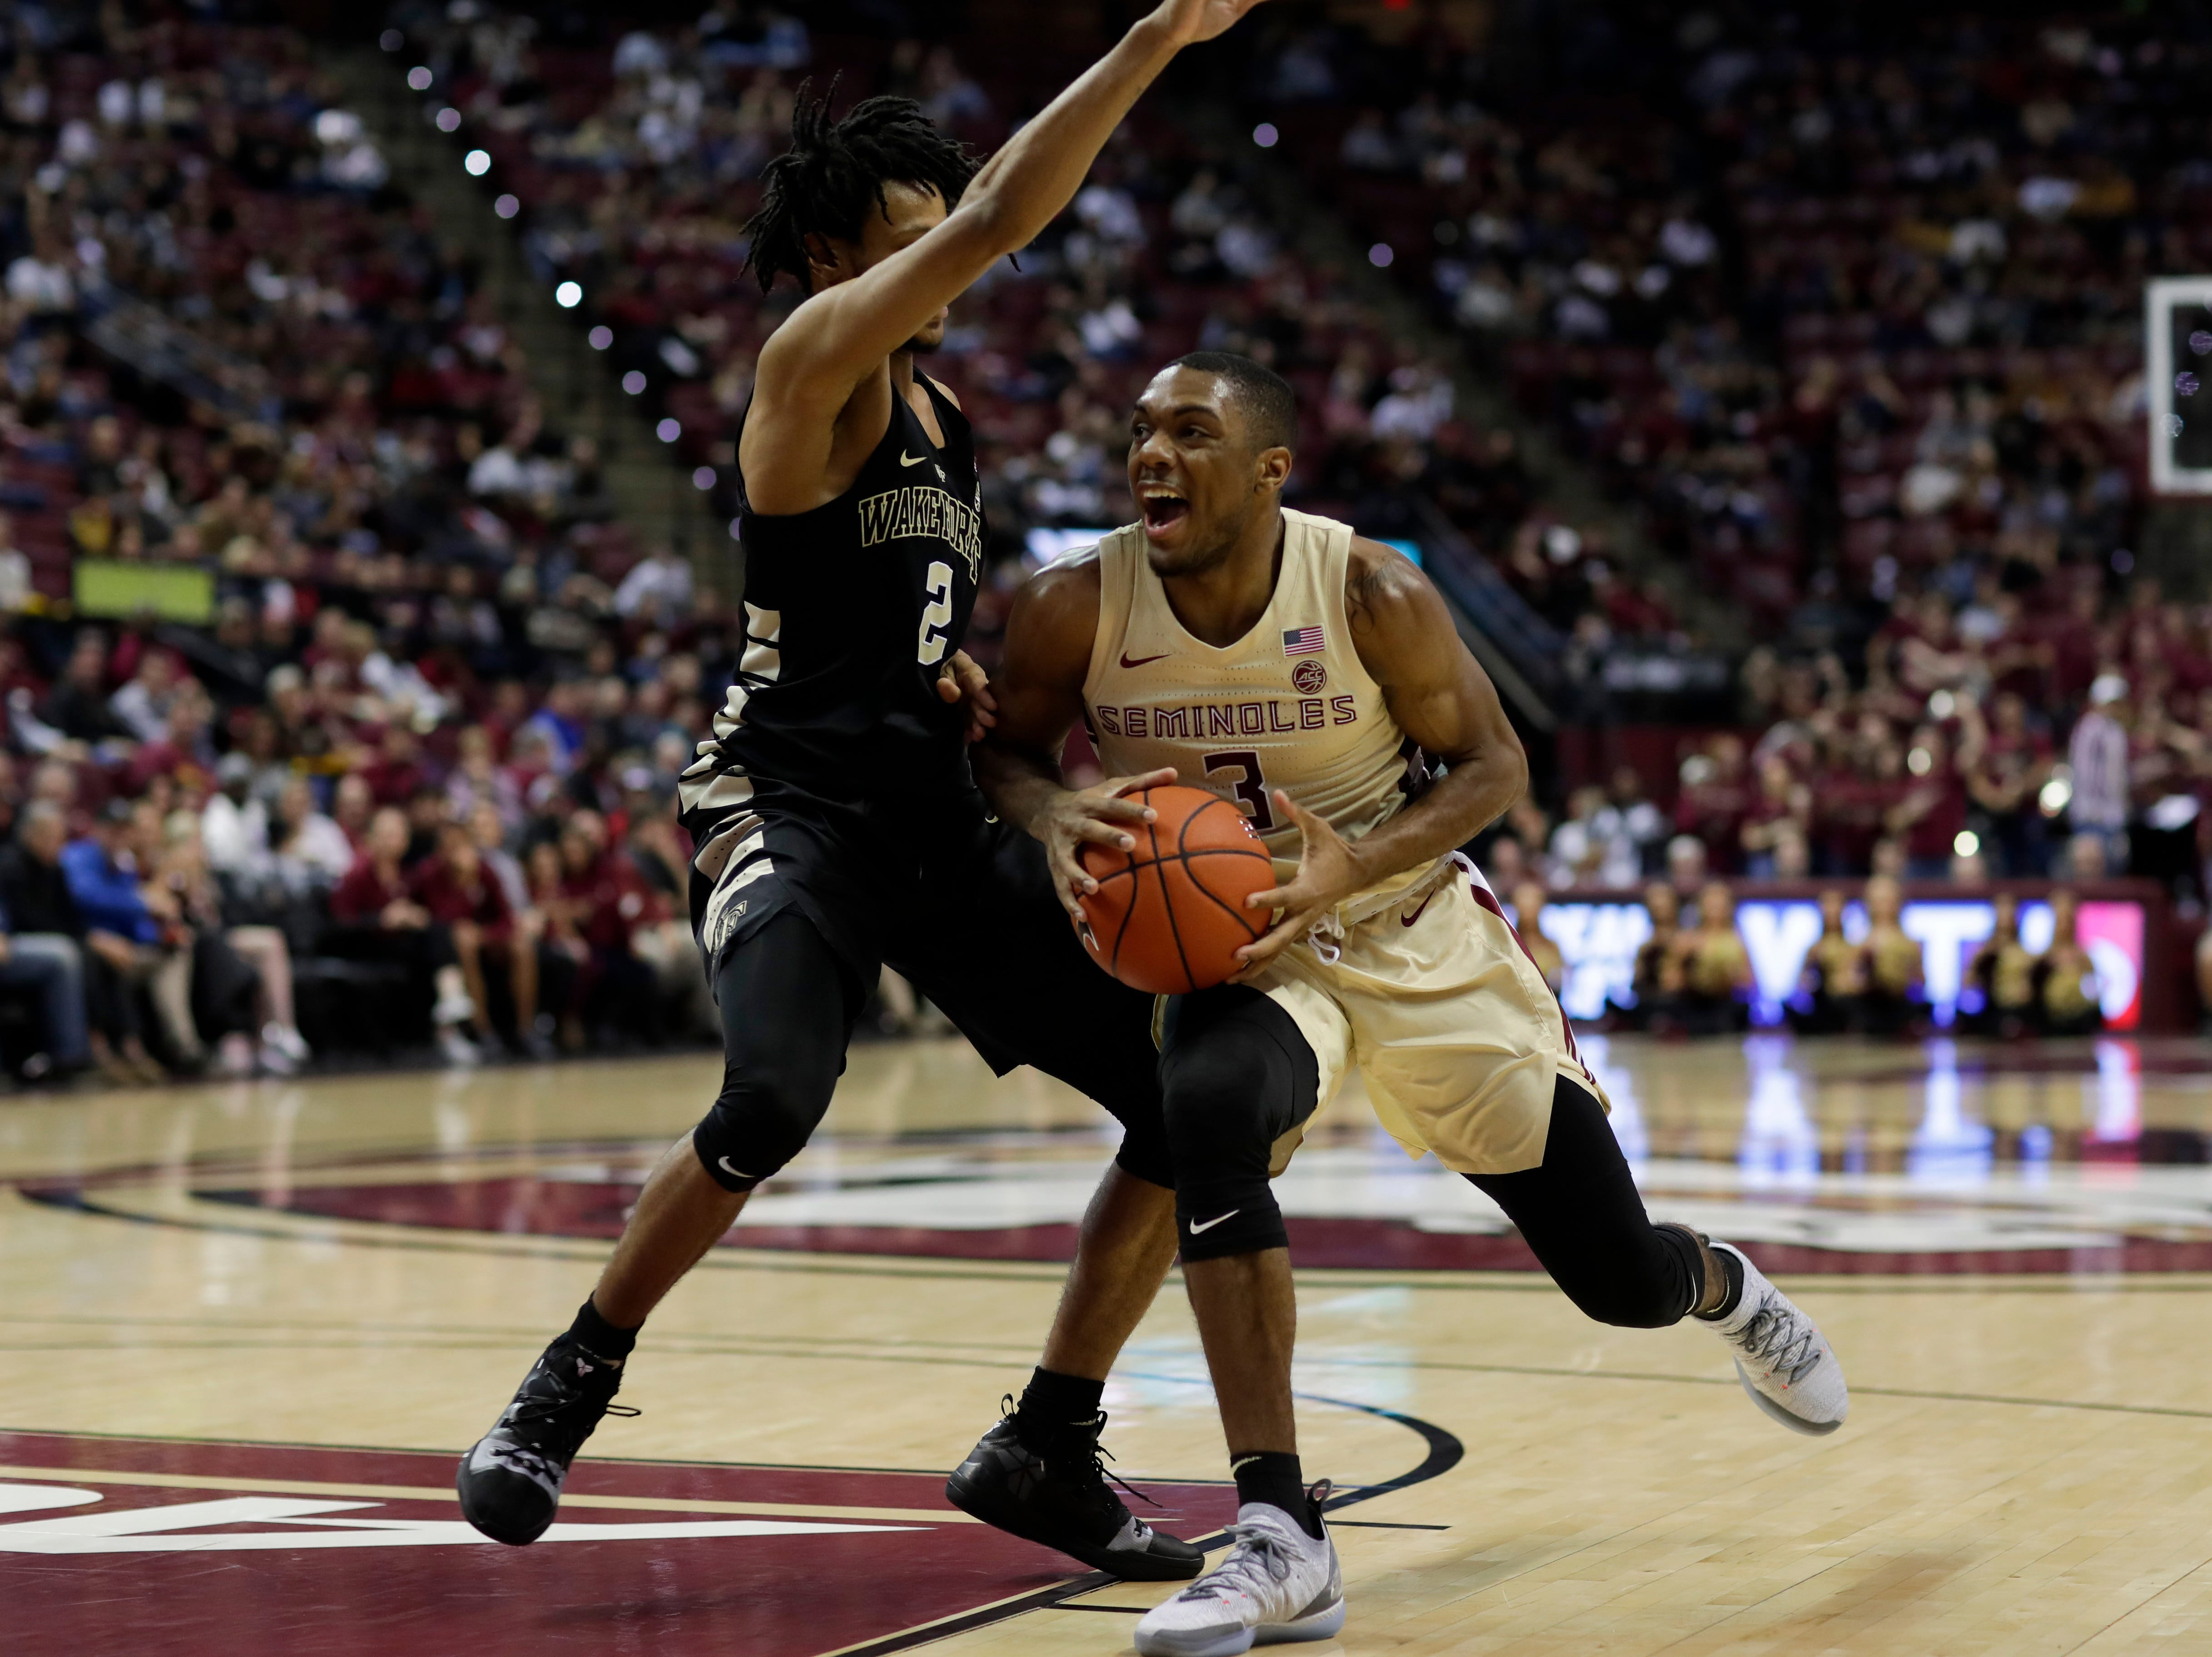 Florida State Seminoles guard Trent Forrest (3) meets a defender at the lane during a game between FSU and Wake Forest at the Donald L. Tucker Civic Center Wednesday, Feb. 13, 2019.